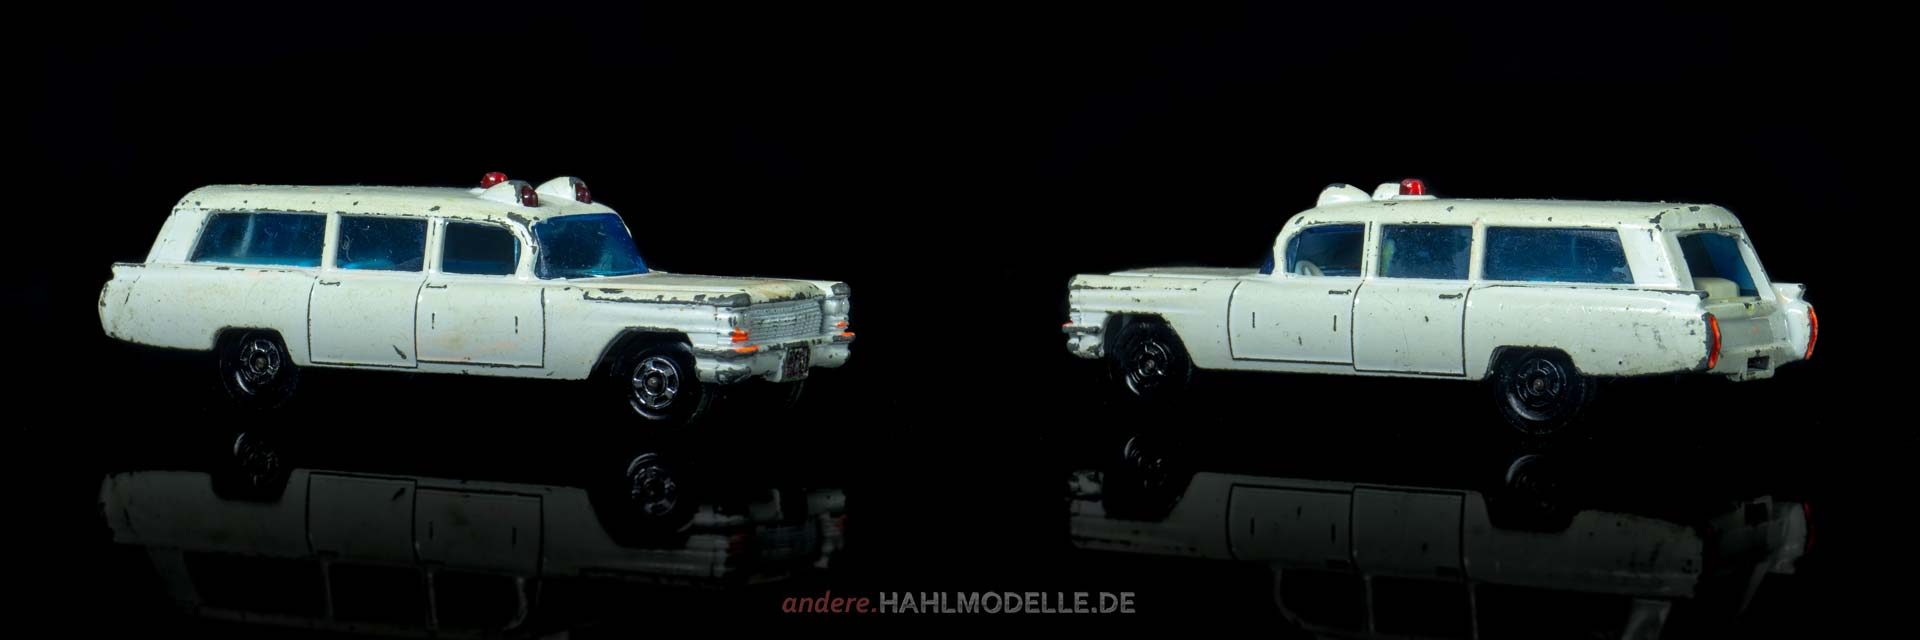 Cadillac Commercial Chassis Sayers and Scoville Ambulance | Kombi | Lesney Products & Co. Ltd. | Matchbox Superfast S&S Cadillac Ambulance | www.andere.hahlmodelle.de